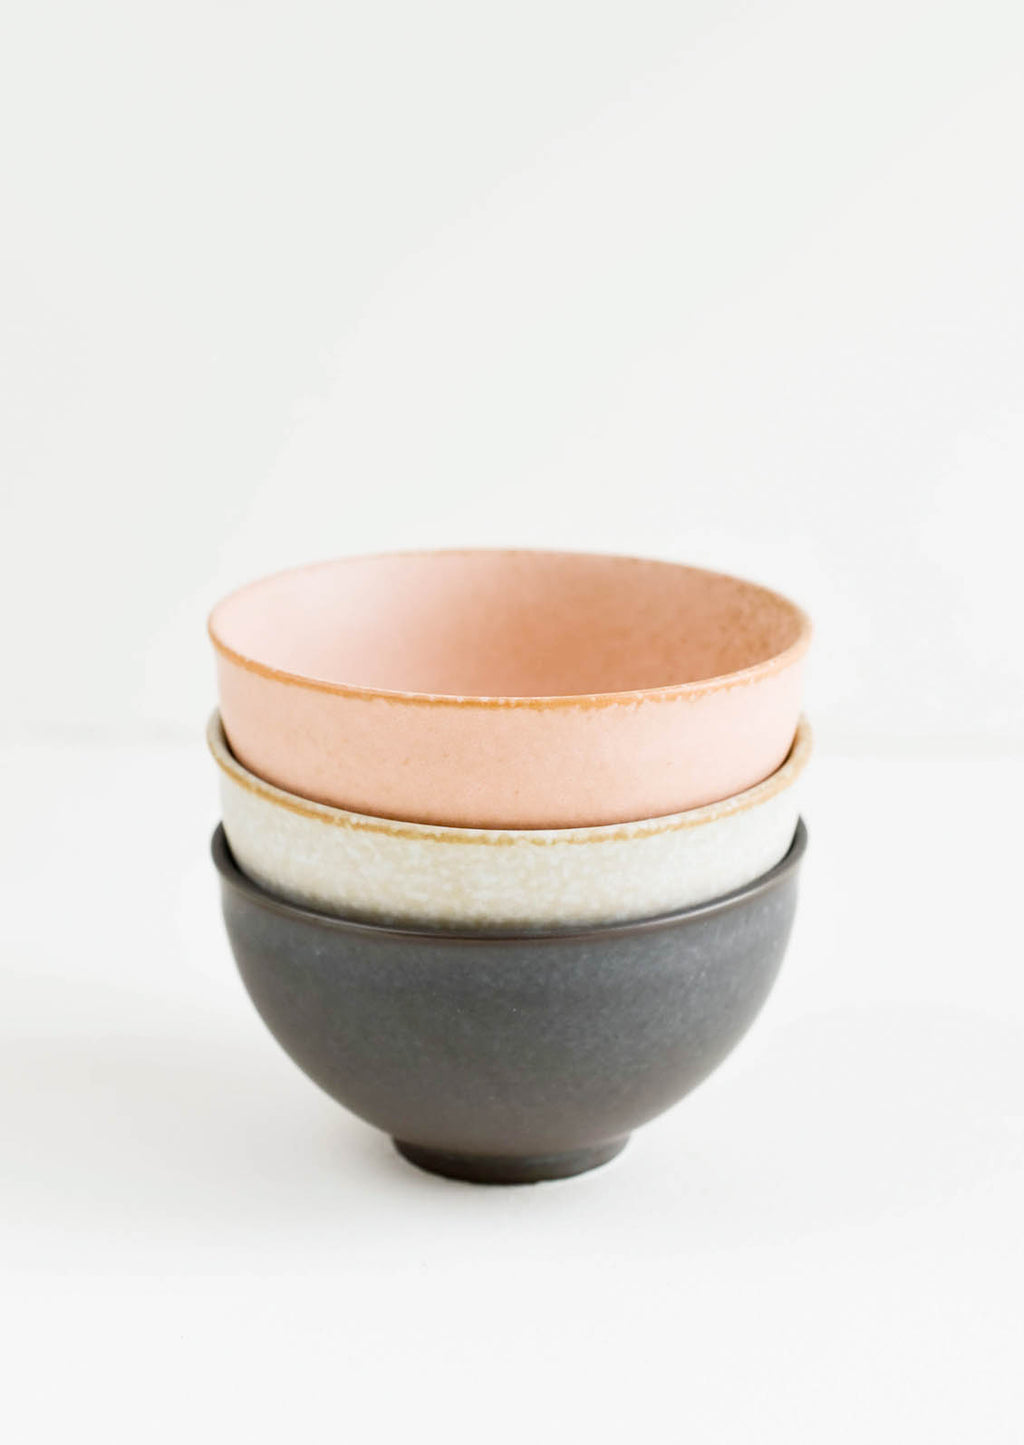 4: Stacked Ceramic Bowls in Grey, Peach & Black - LEIF